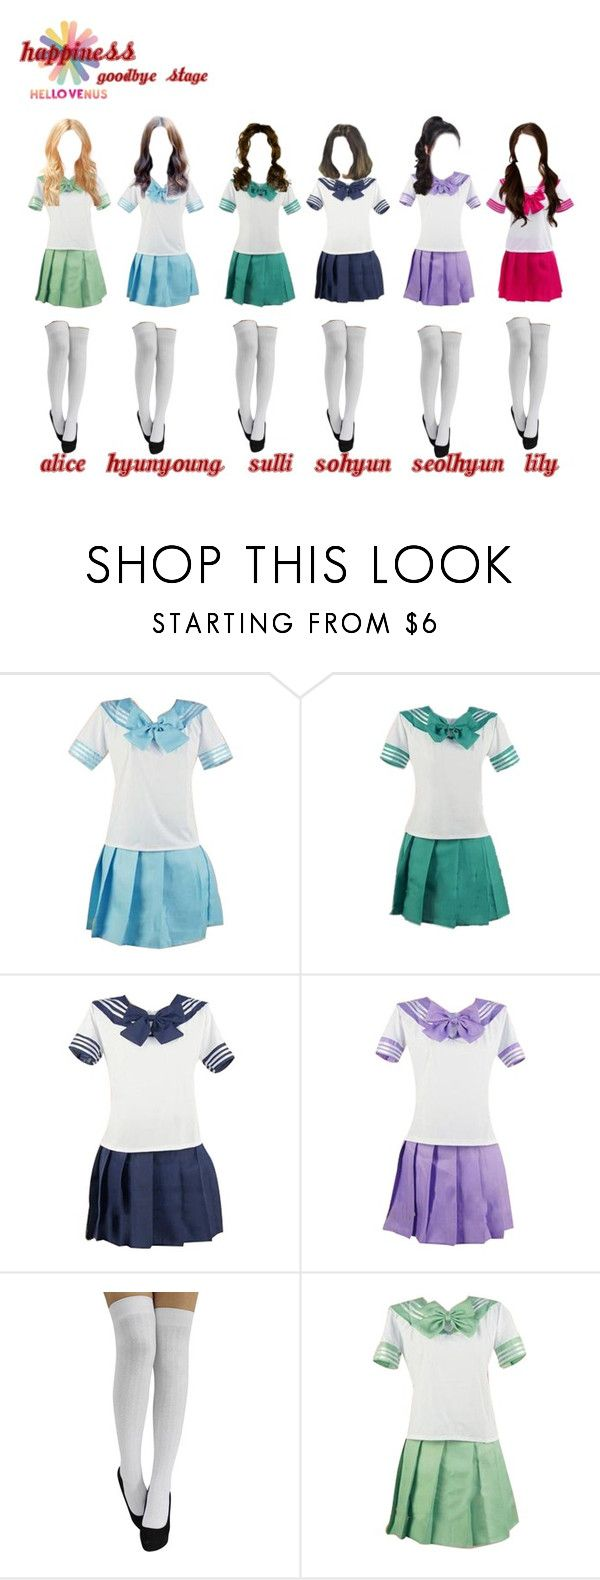 """""""Hello Venus! Happiness! 2013 goodbye stage"""" by kpopgroups101 ❤ liked on Polyvore"""